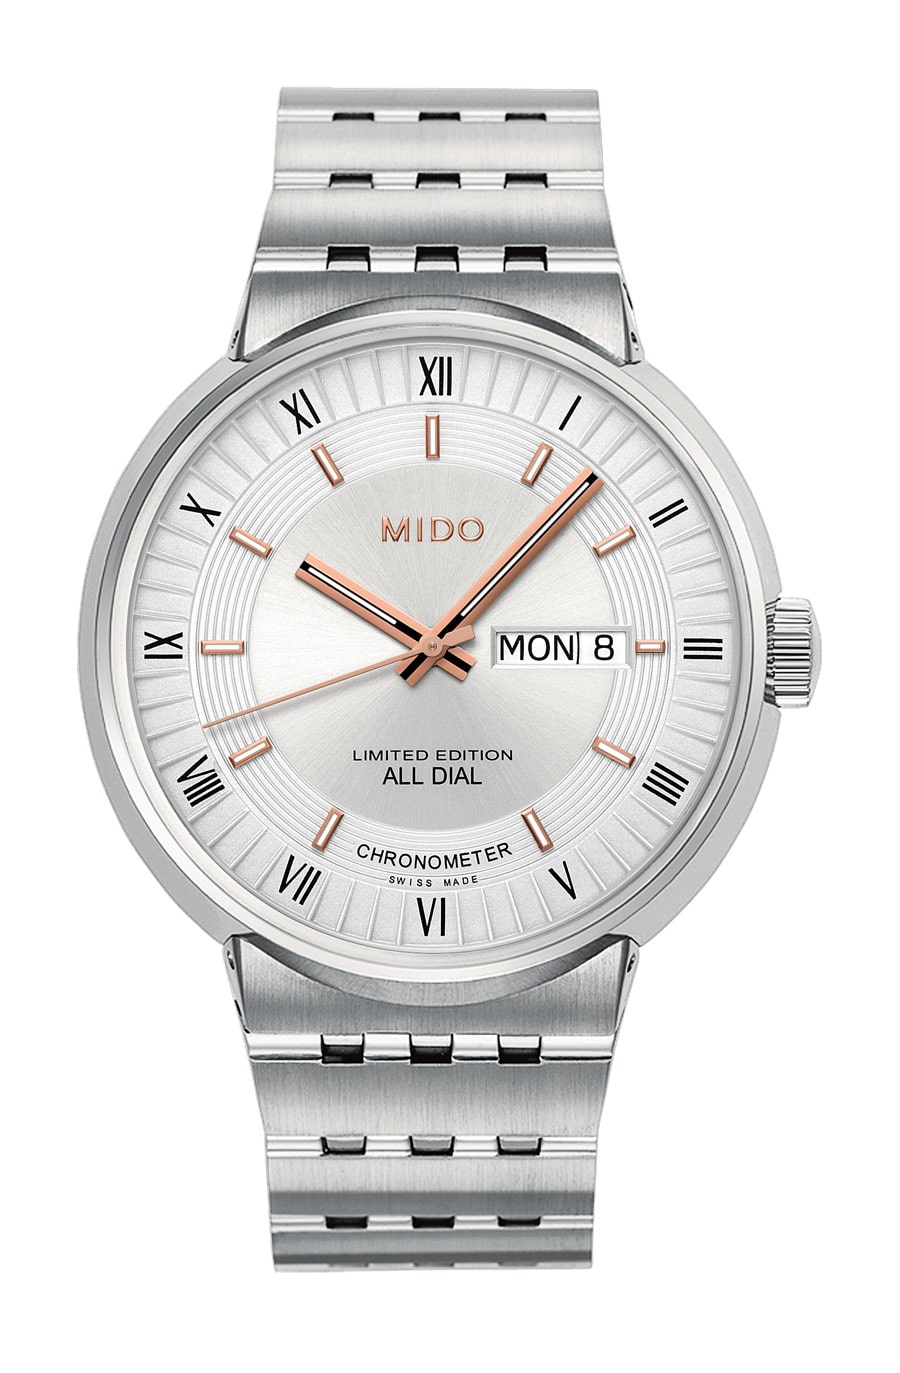 Mido: All Dial Gent Limited Edition 1918